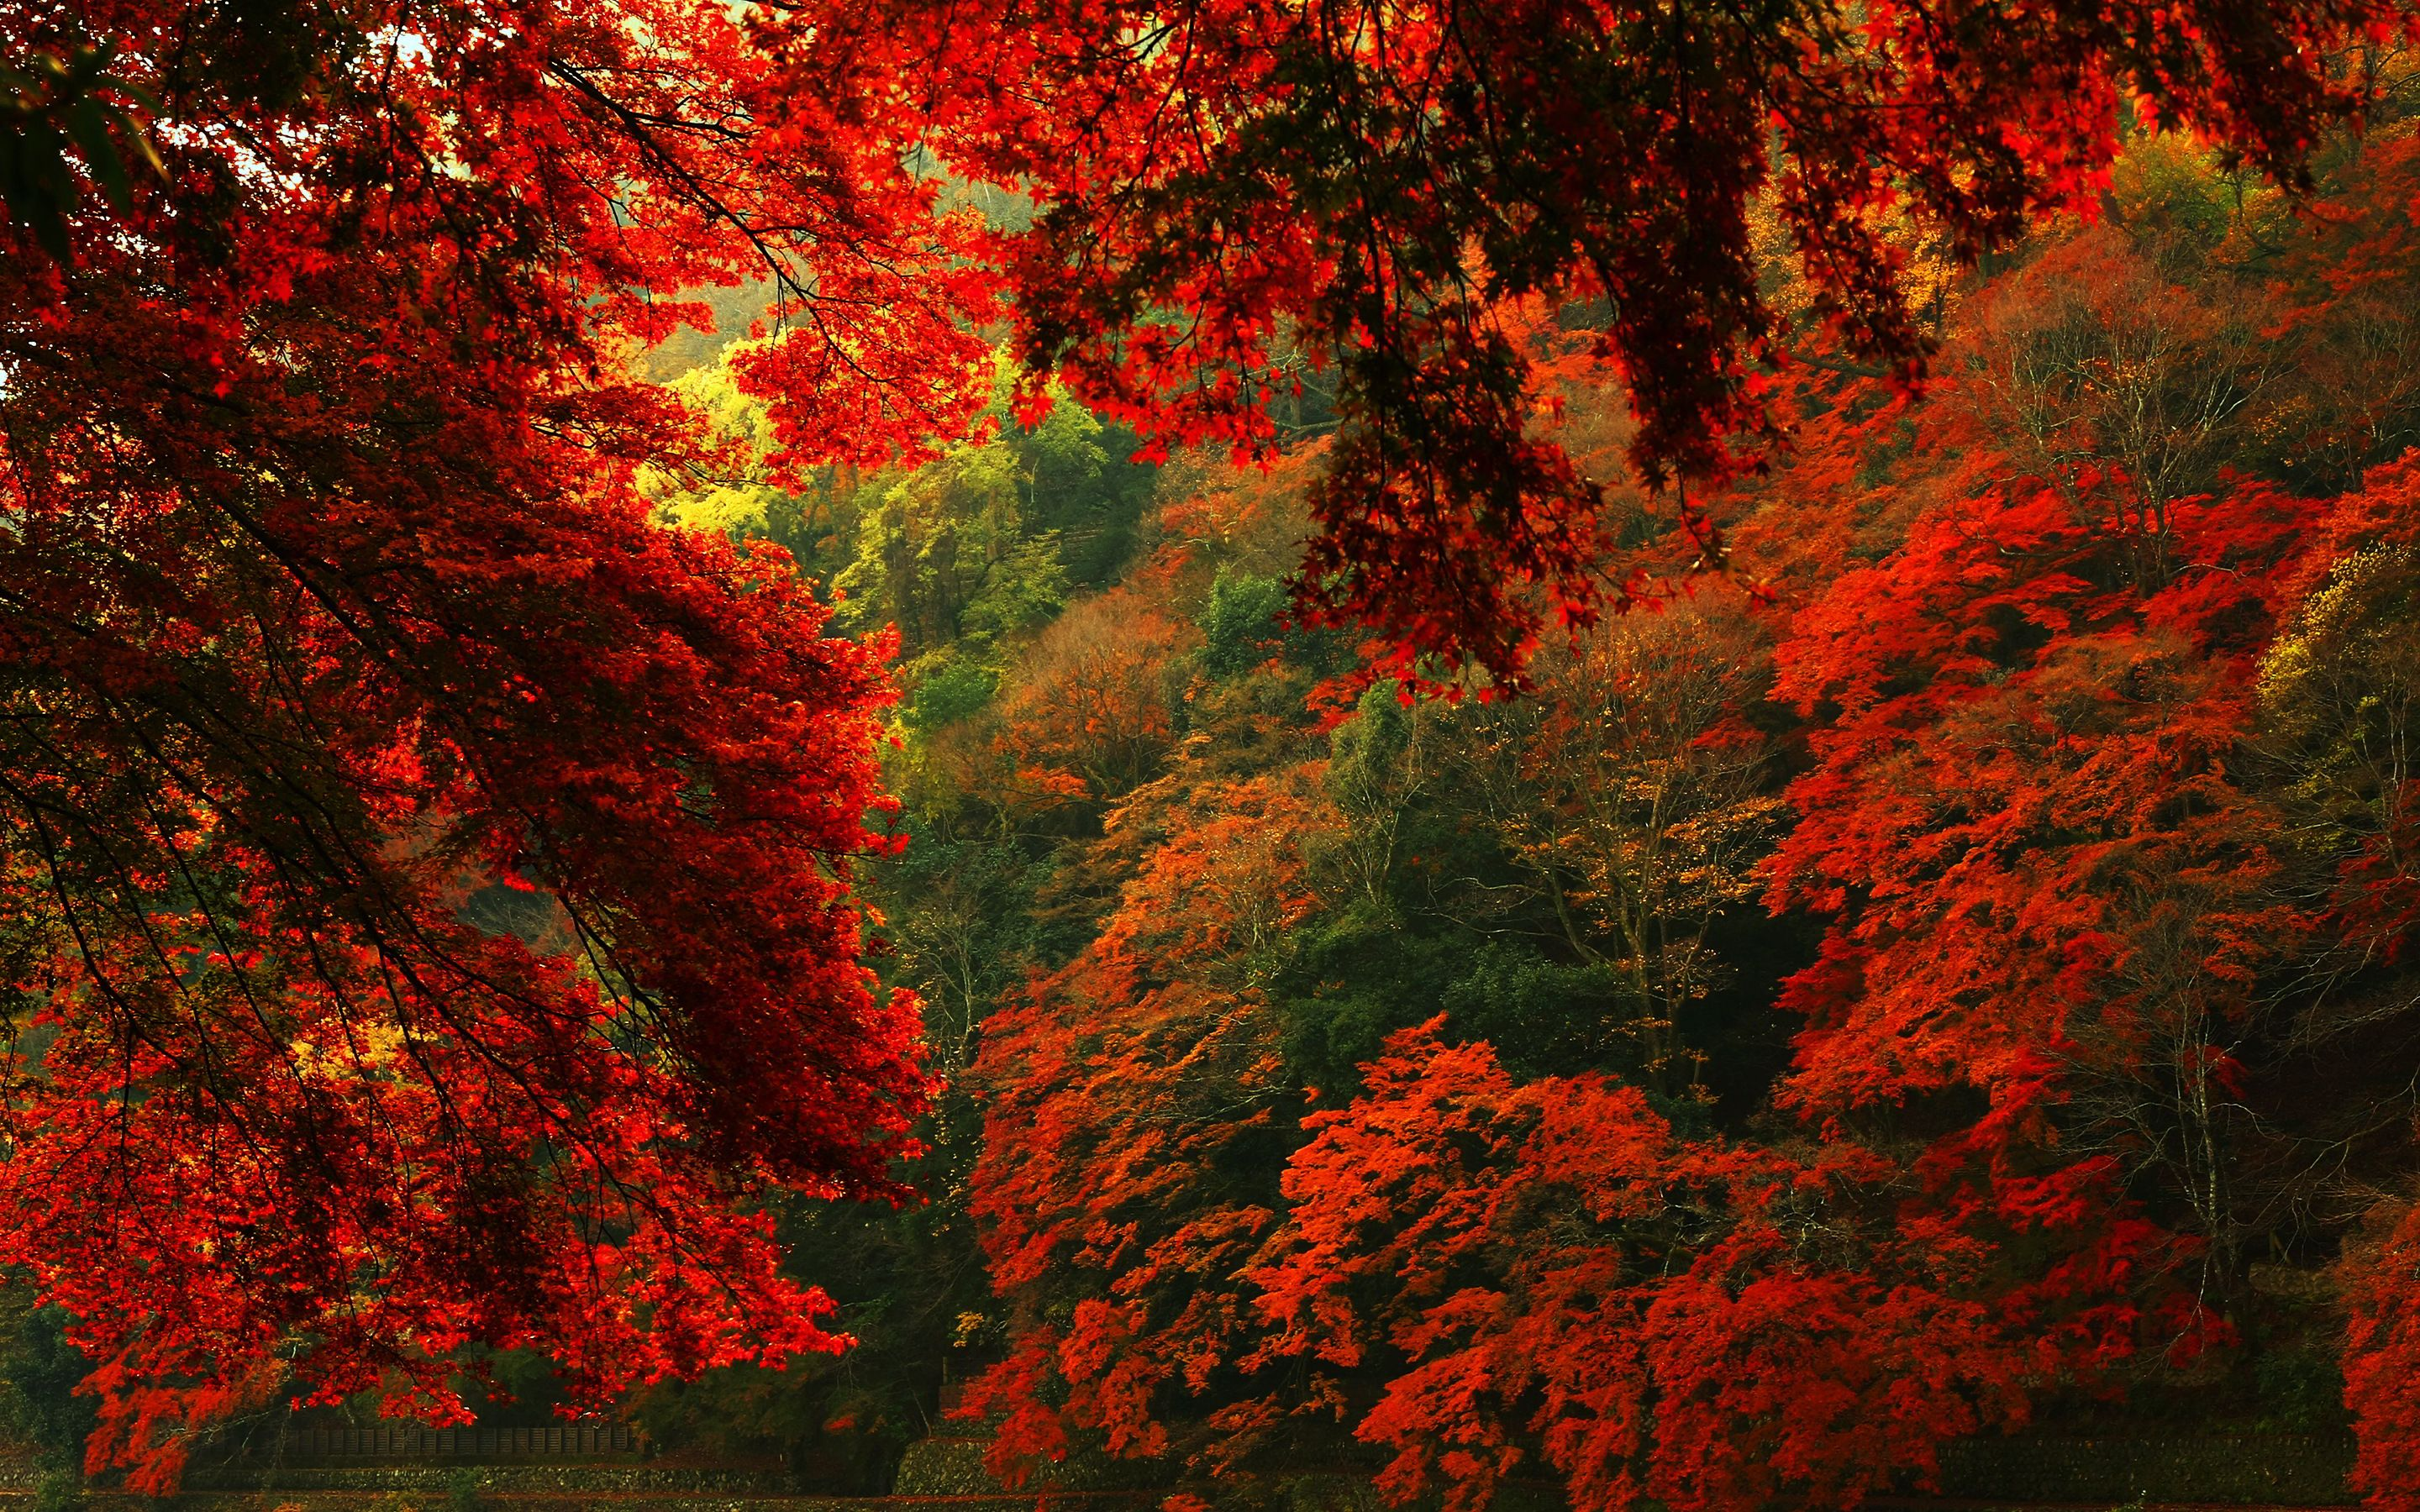 Hd wallpapers and background images Aesthetic Autumn Wallpapers - Wallpaper Cave